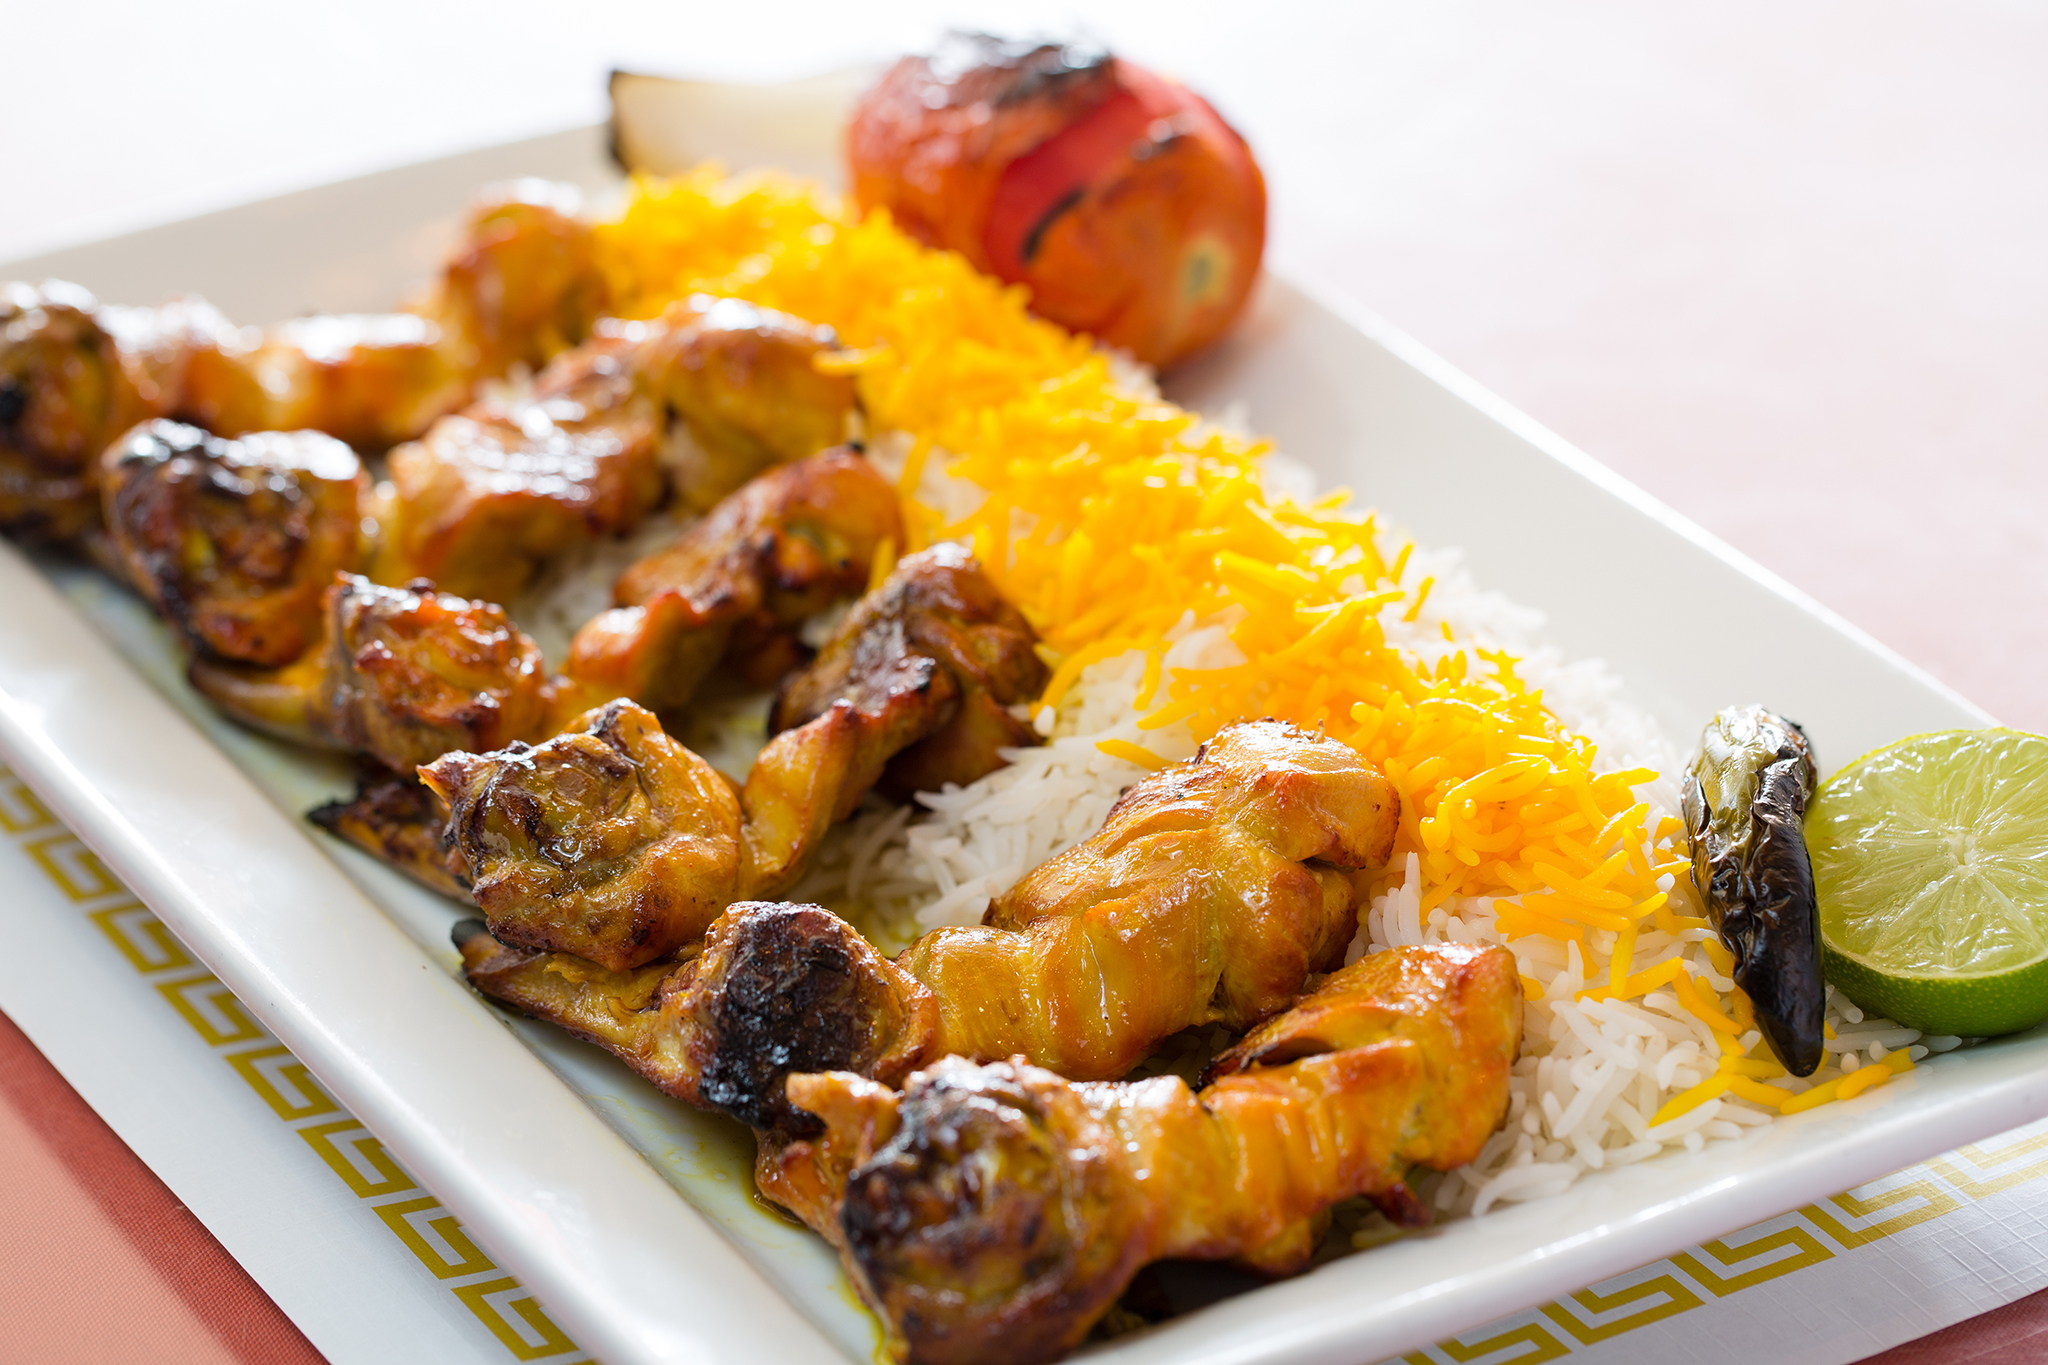 Chicken bone-in with rice at Farsi Café